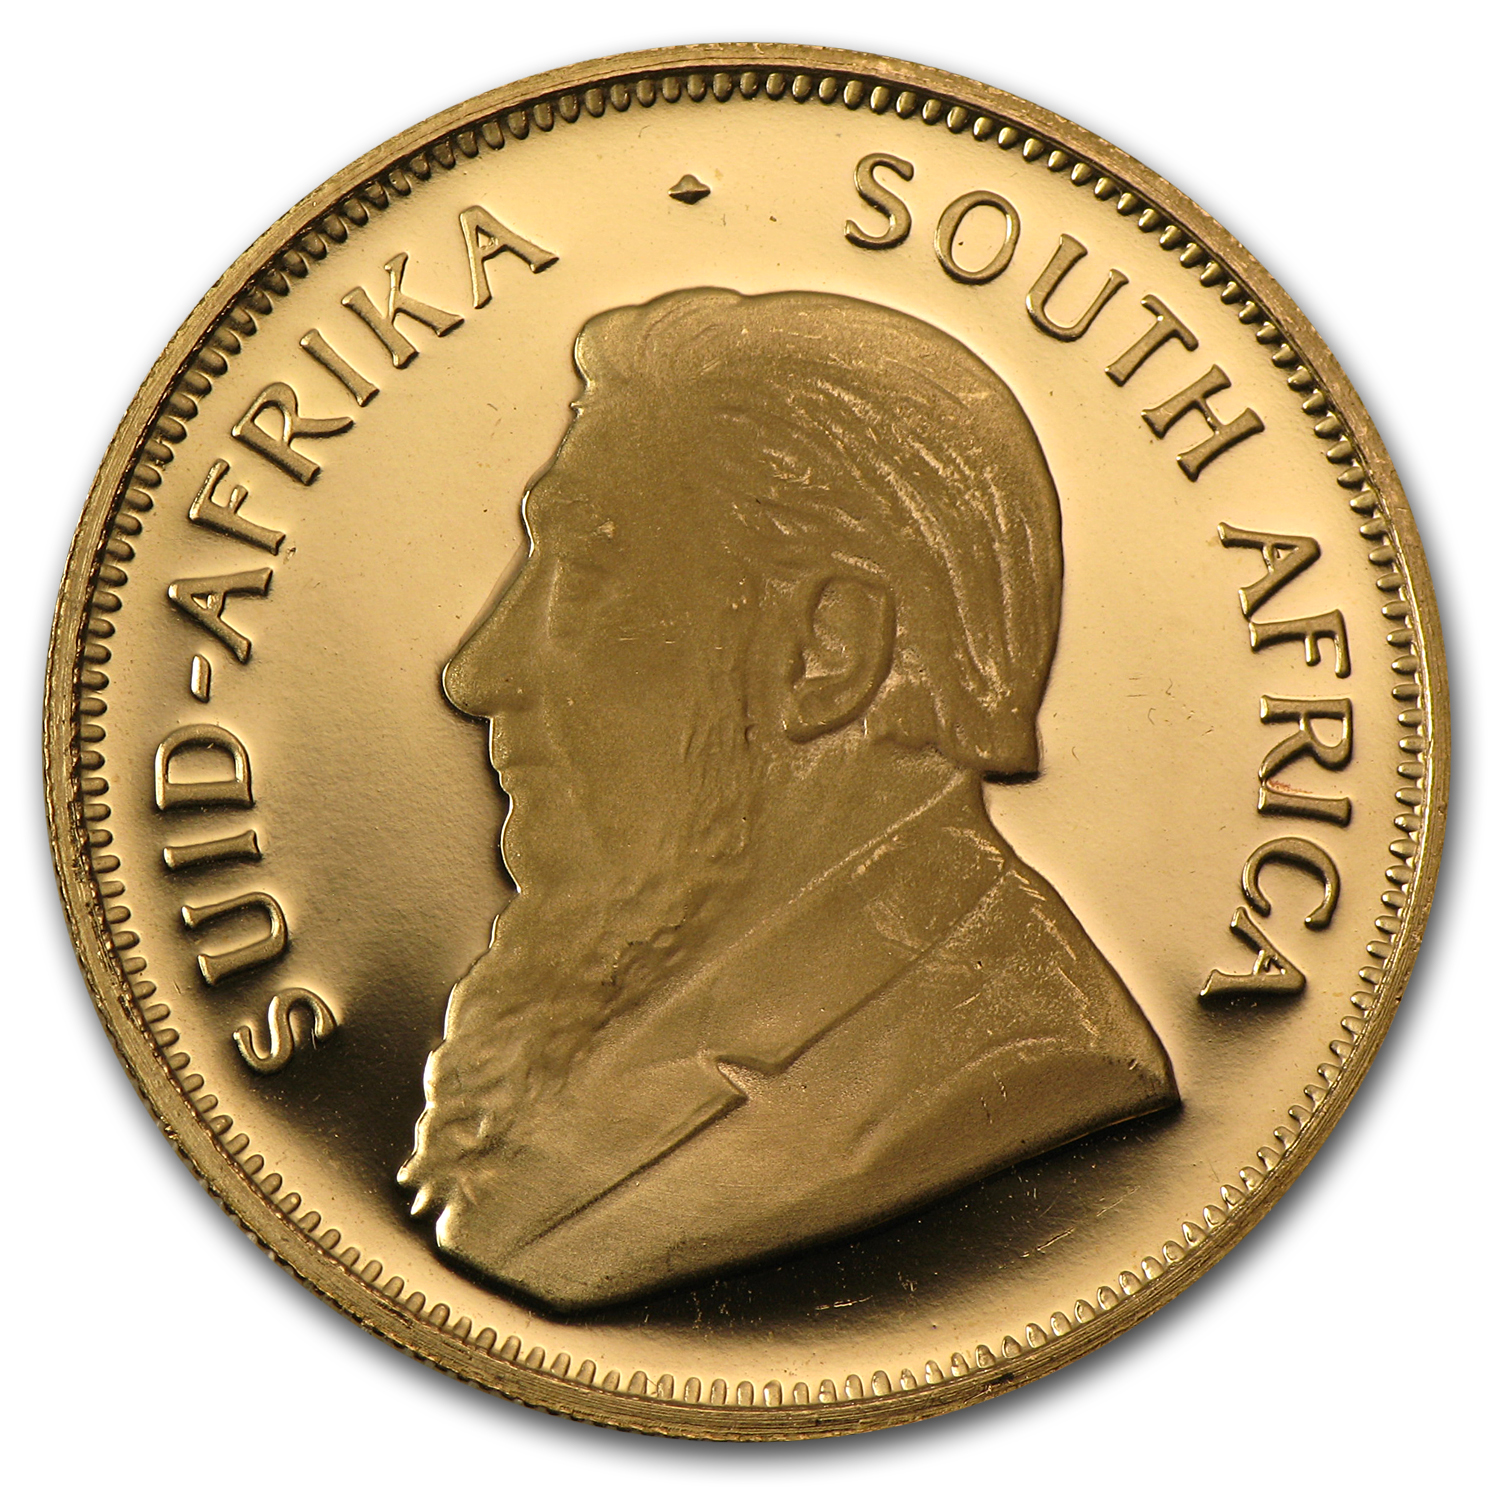 1984 South Africa 1/2 oz Proof Gold Krugerrand